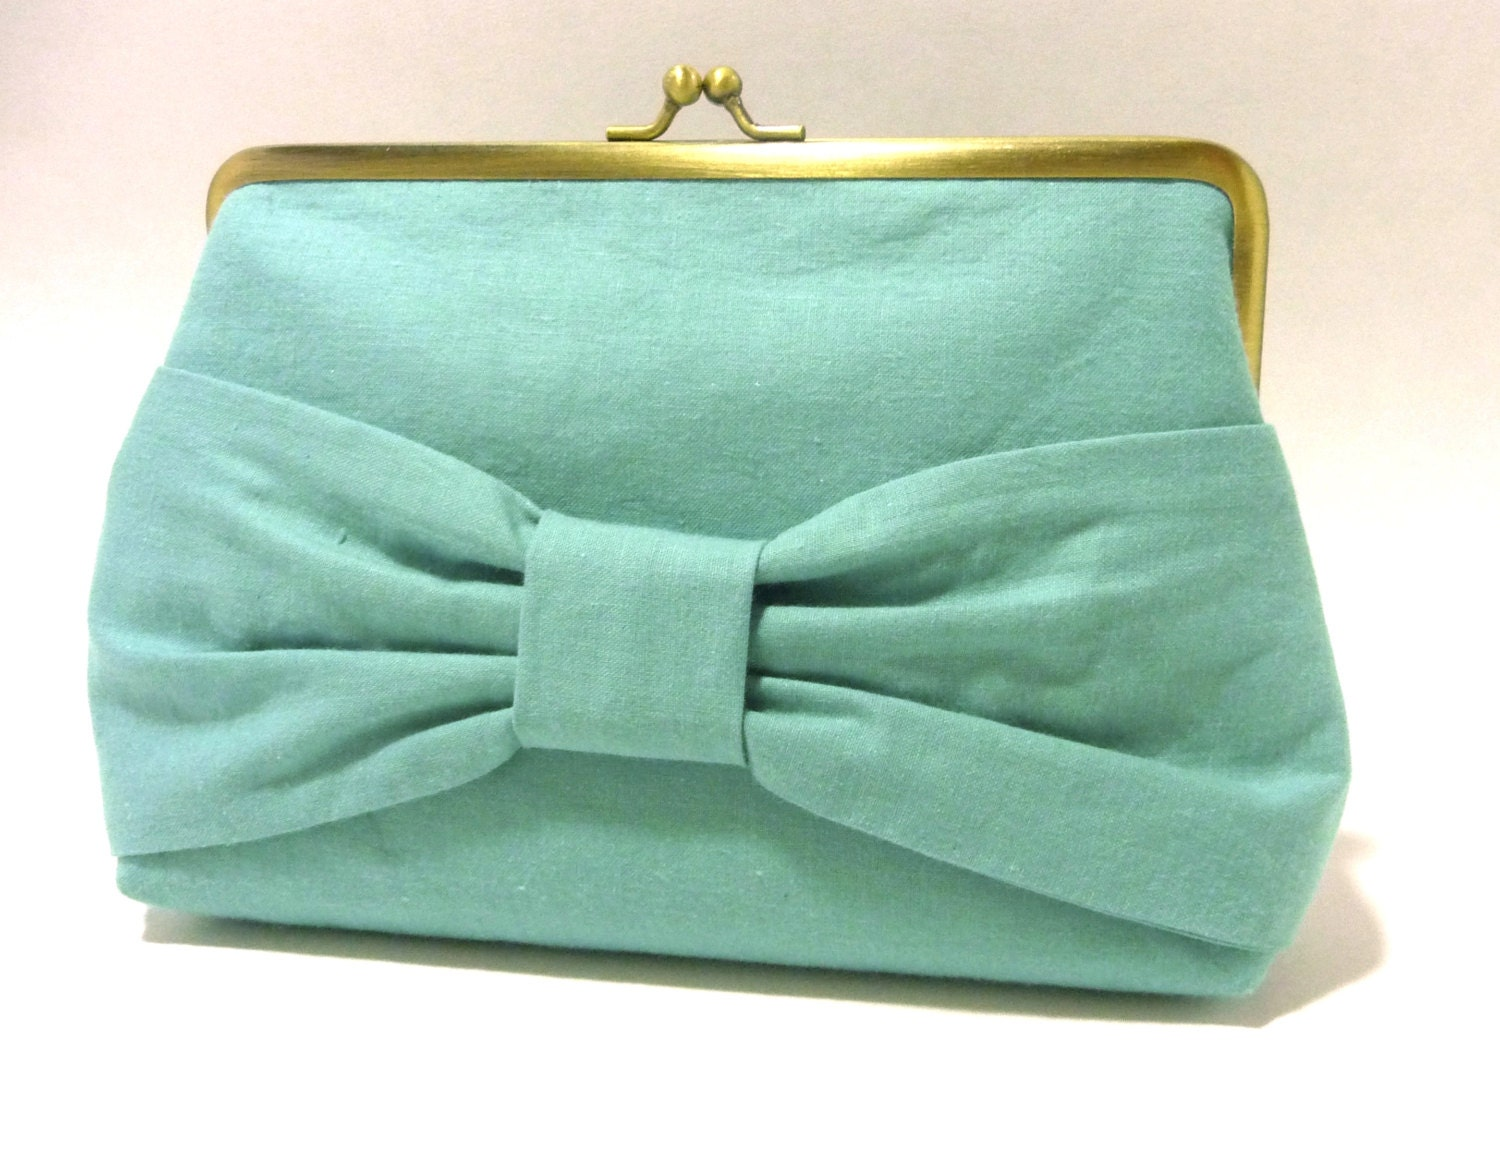 Mint Bow Clutch, Seafoam Green Purse, Handbag, Seven Inch Frame - HighCountryBride